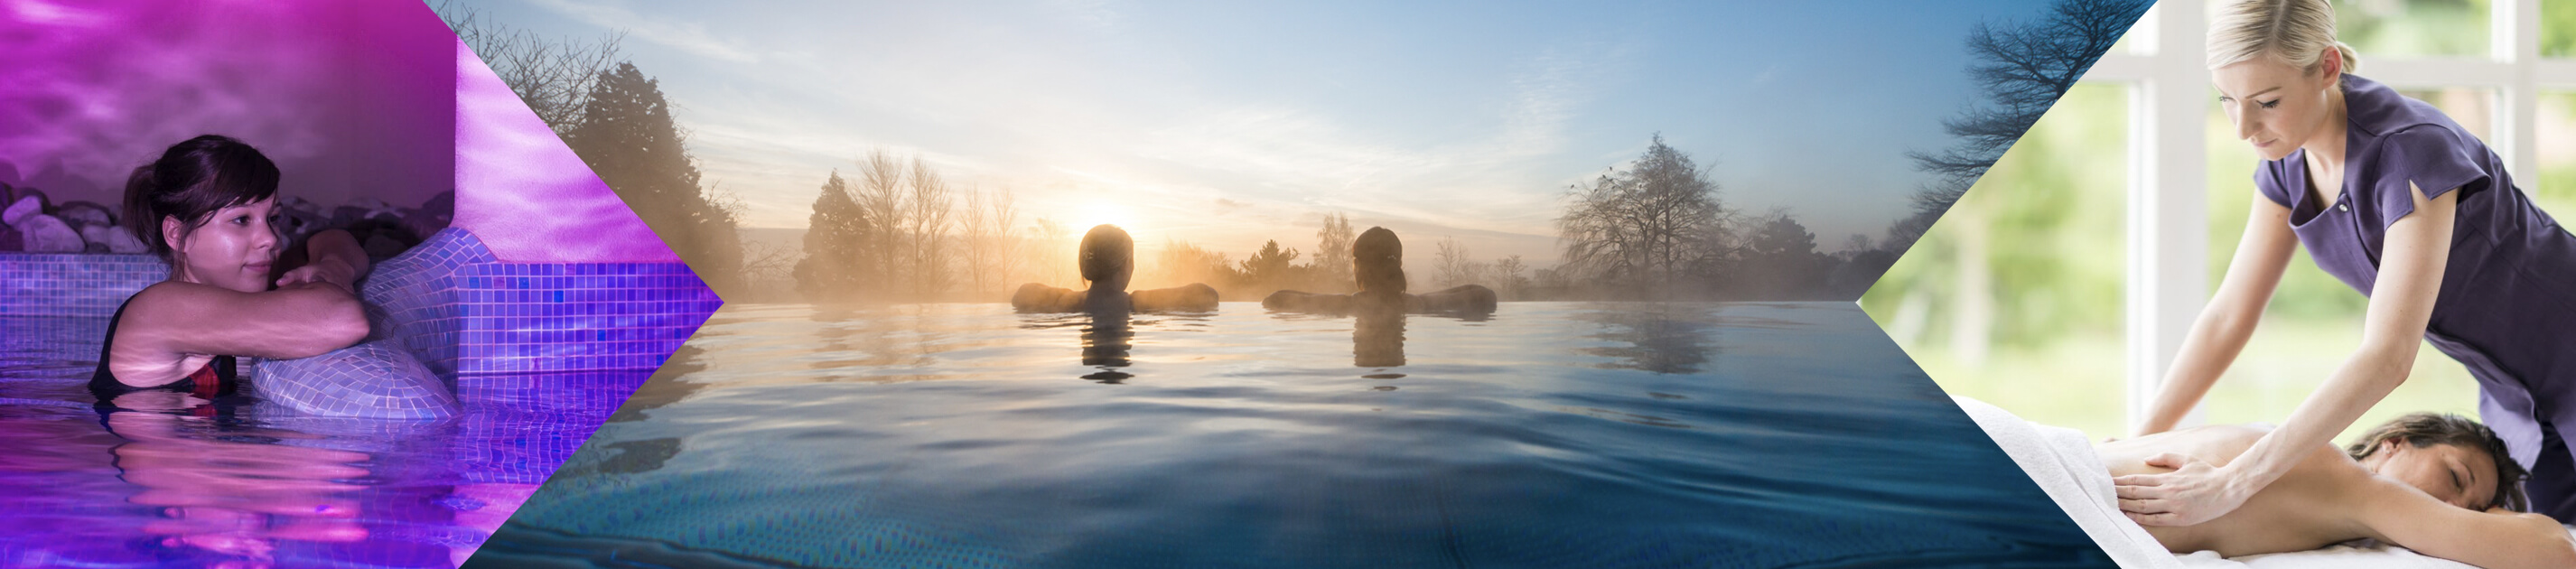 1533048955 ragdale hall spa gallery images competition page